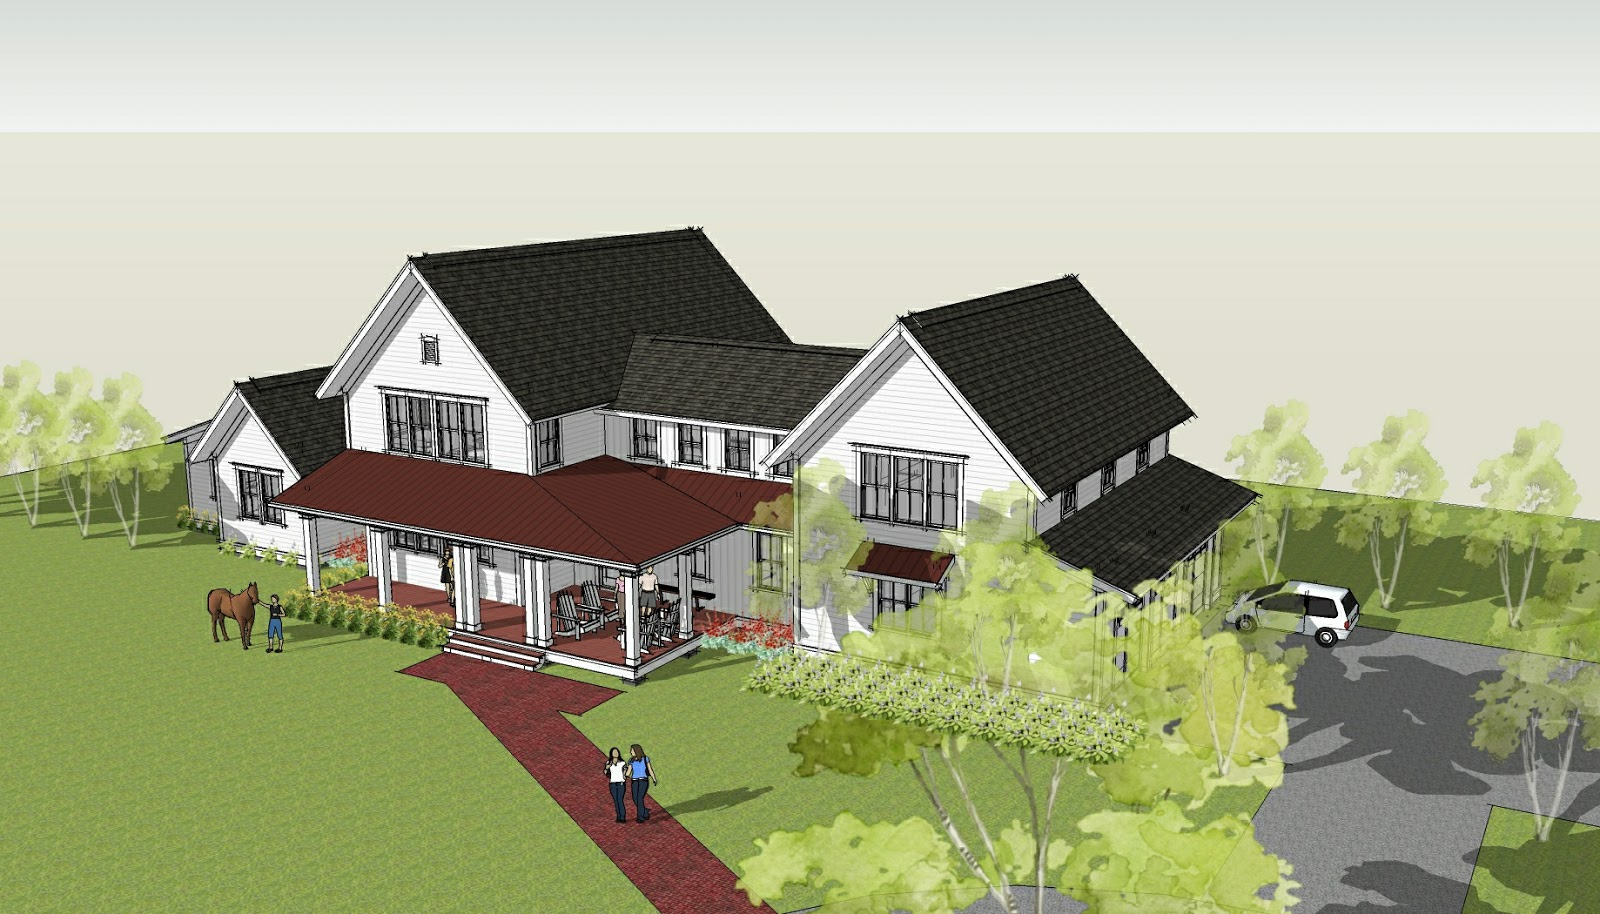 Ron brenner architects new modern farmhouse design completed for Farm house plans with photos